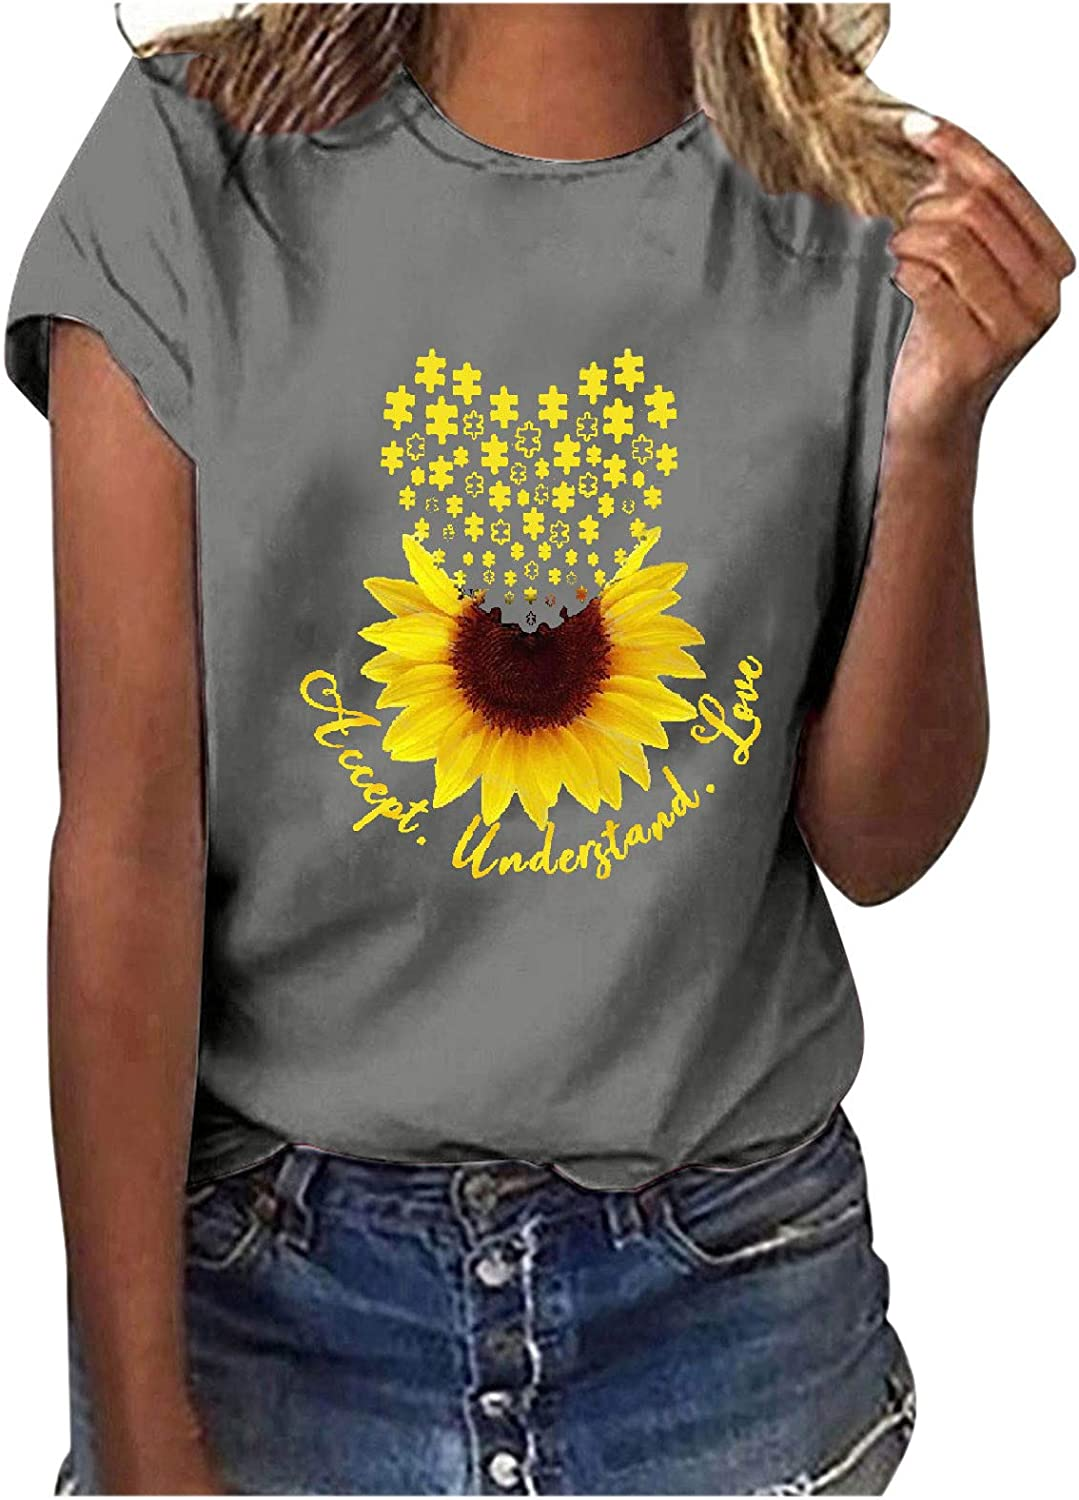 NIANTIE Summer Tops for Women, Women's Shirts Casual Summer Sunflower Graphic Tops Sleeveless Holiday Tees Blouses Tunic